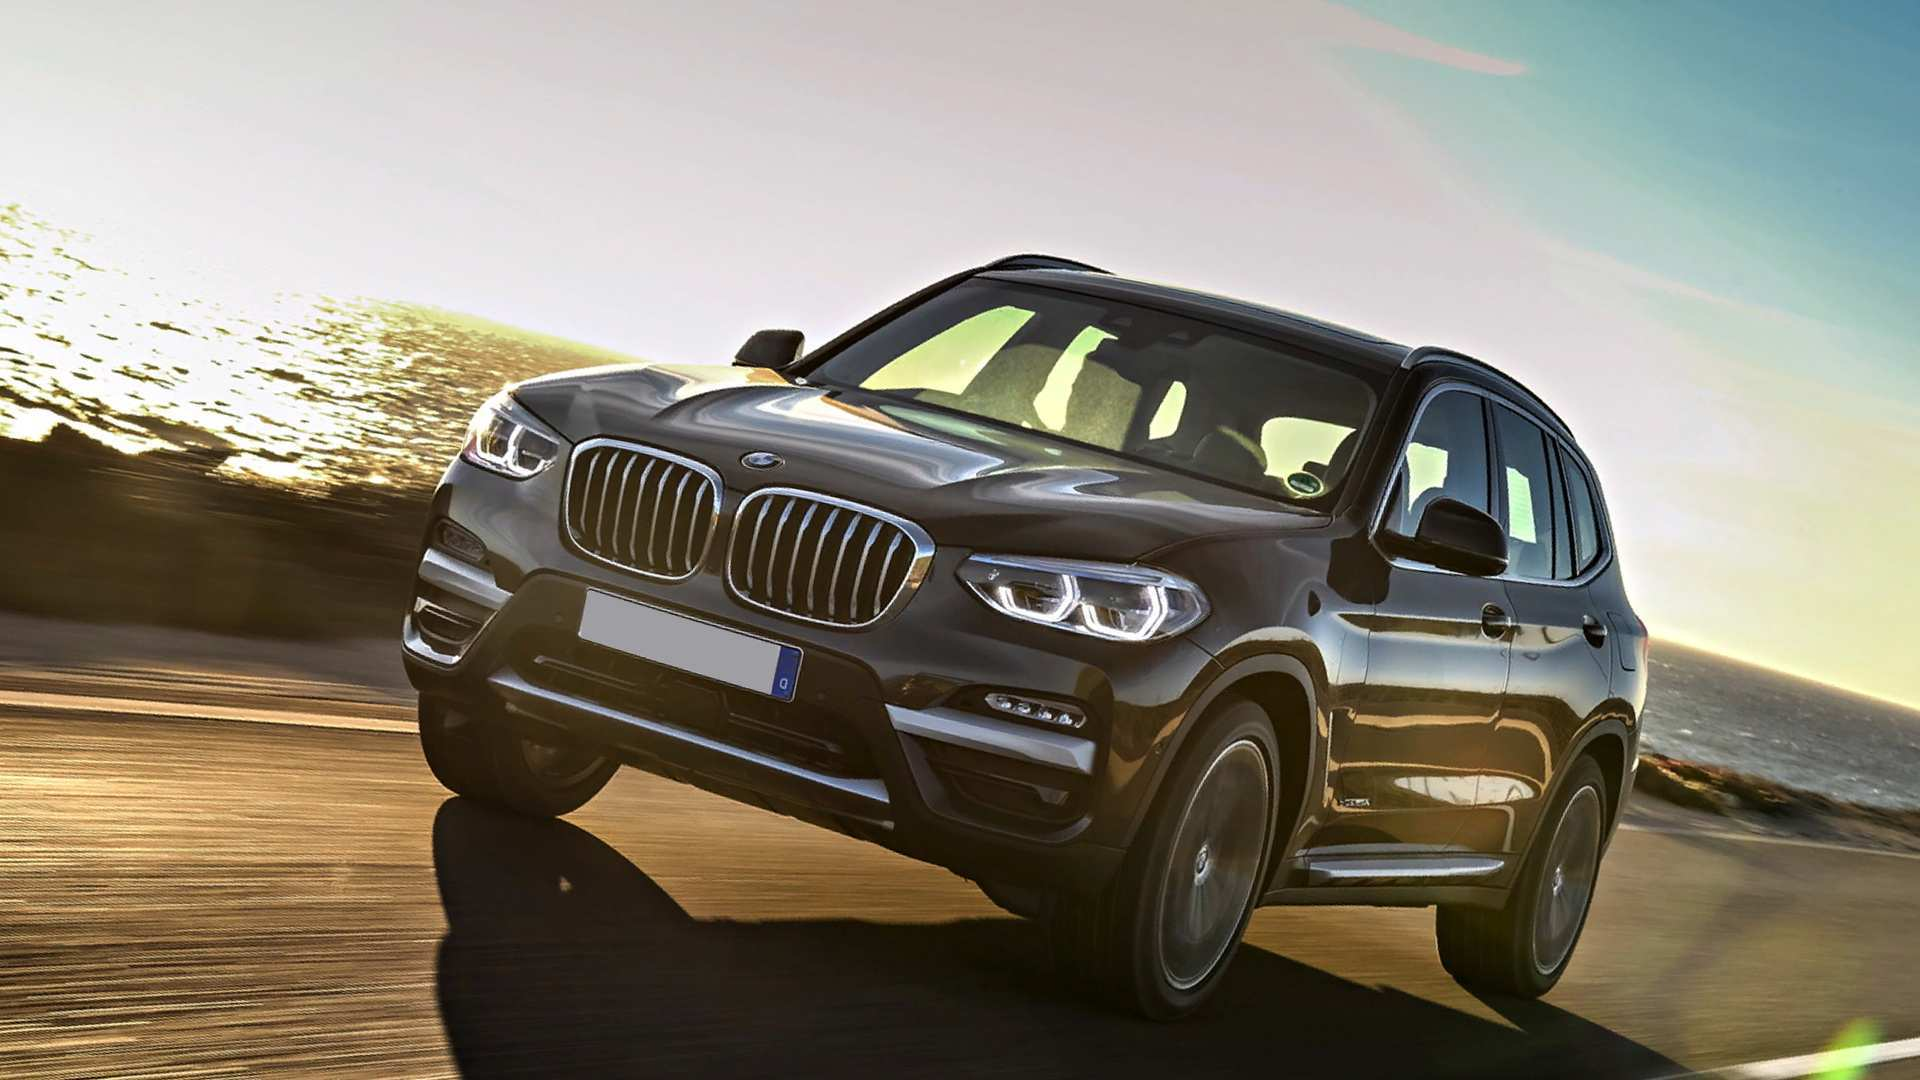 18 Gallery of 2019 Bmw X3 Diesel Configurations by 2019 Bmw X3 Diesel